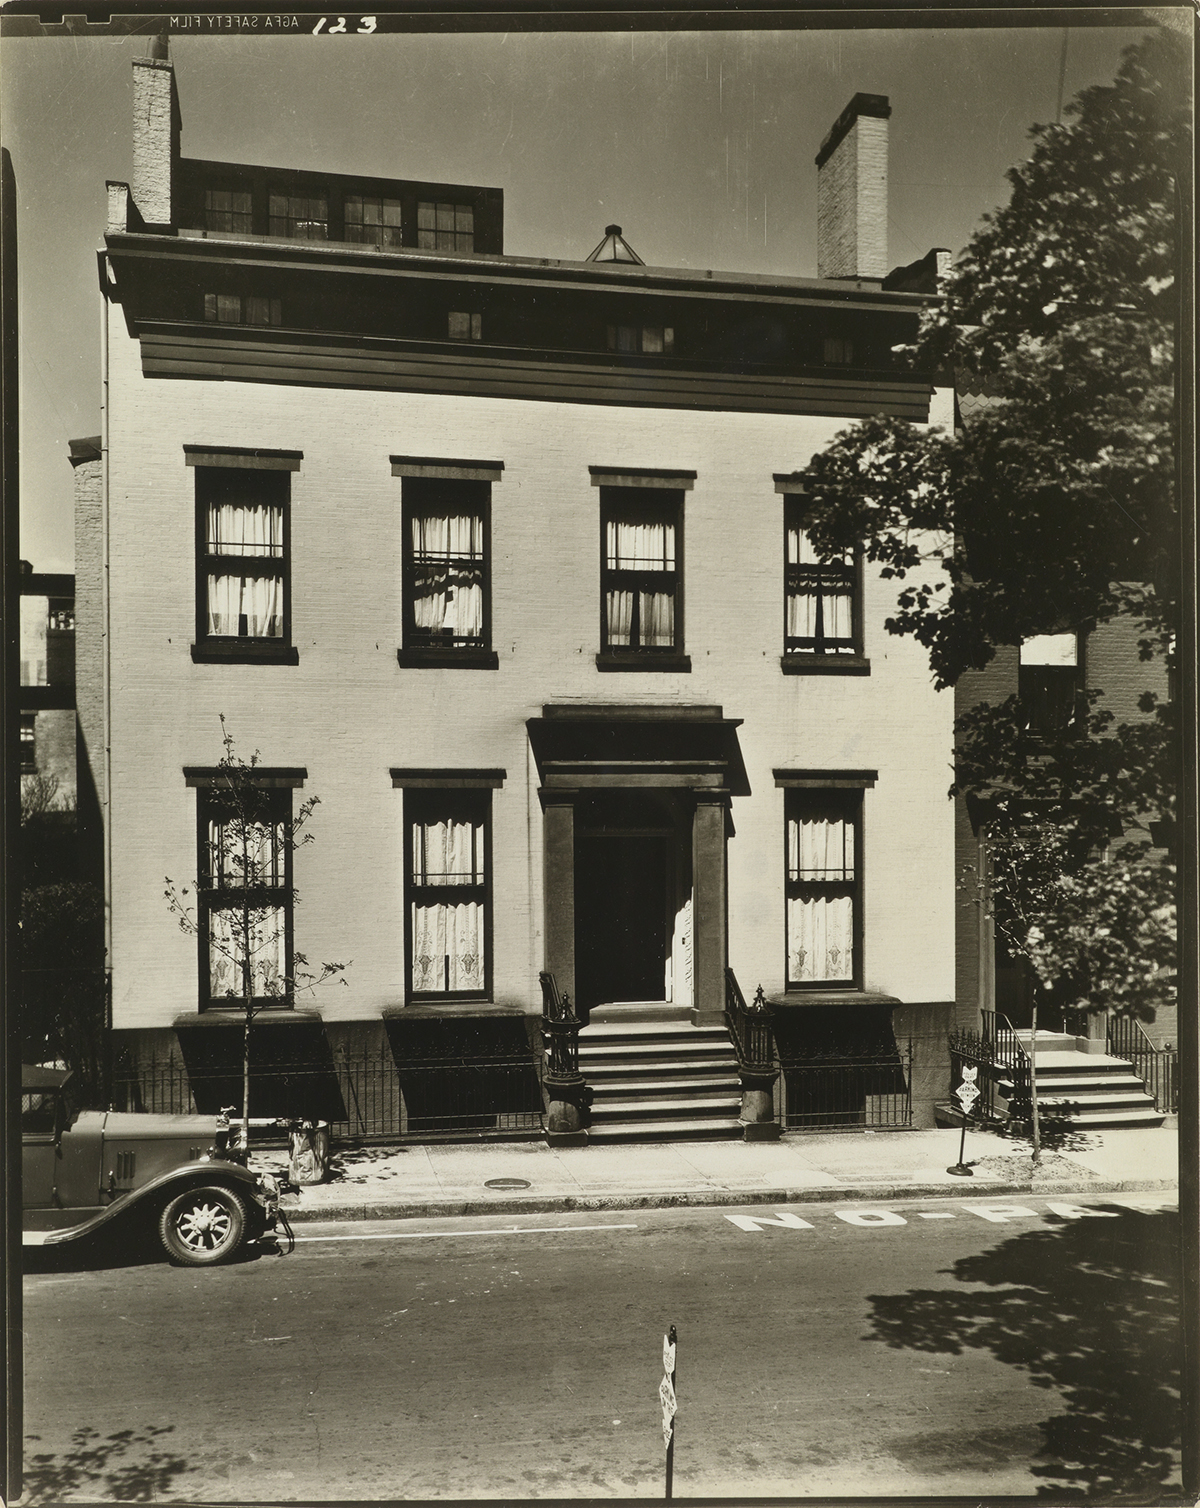 BERENICE ABBOTT (1898-1991) Group of 11 photographs of New York City boroughs from Abbotts iconic Changing New York series.